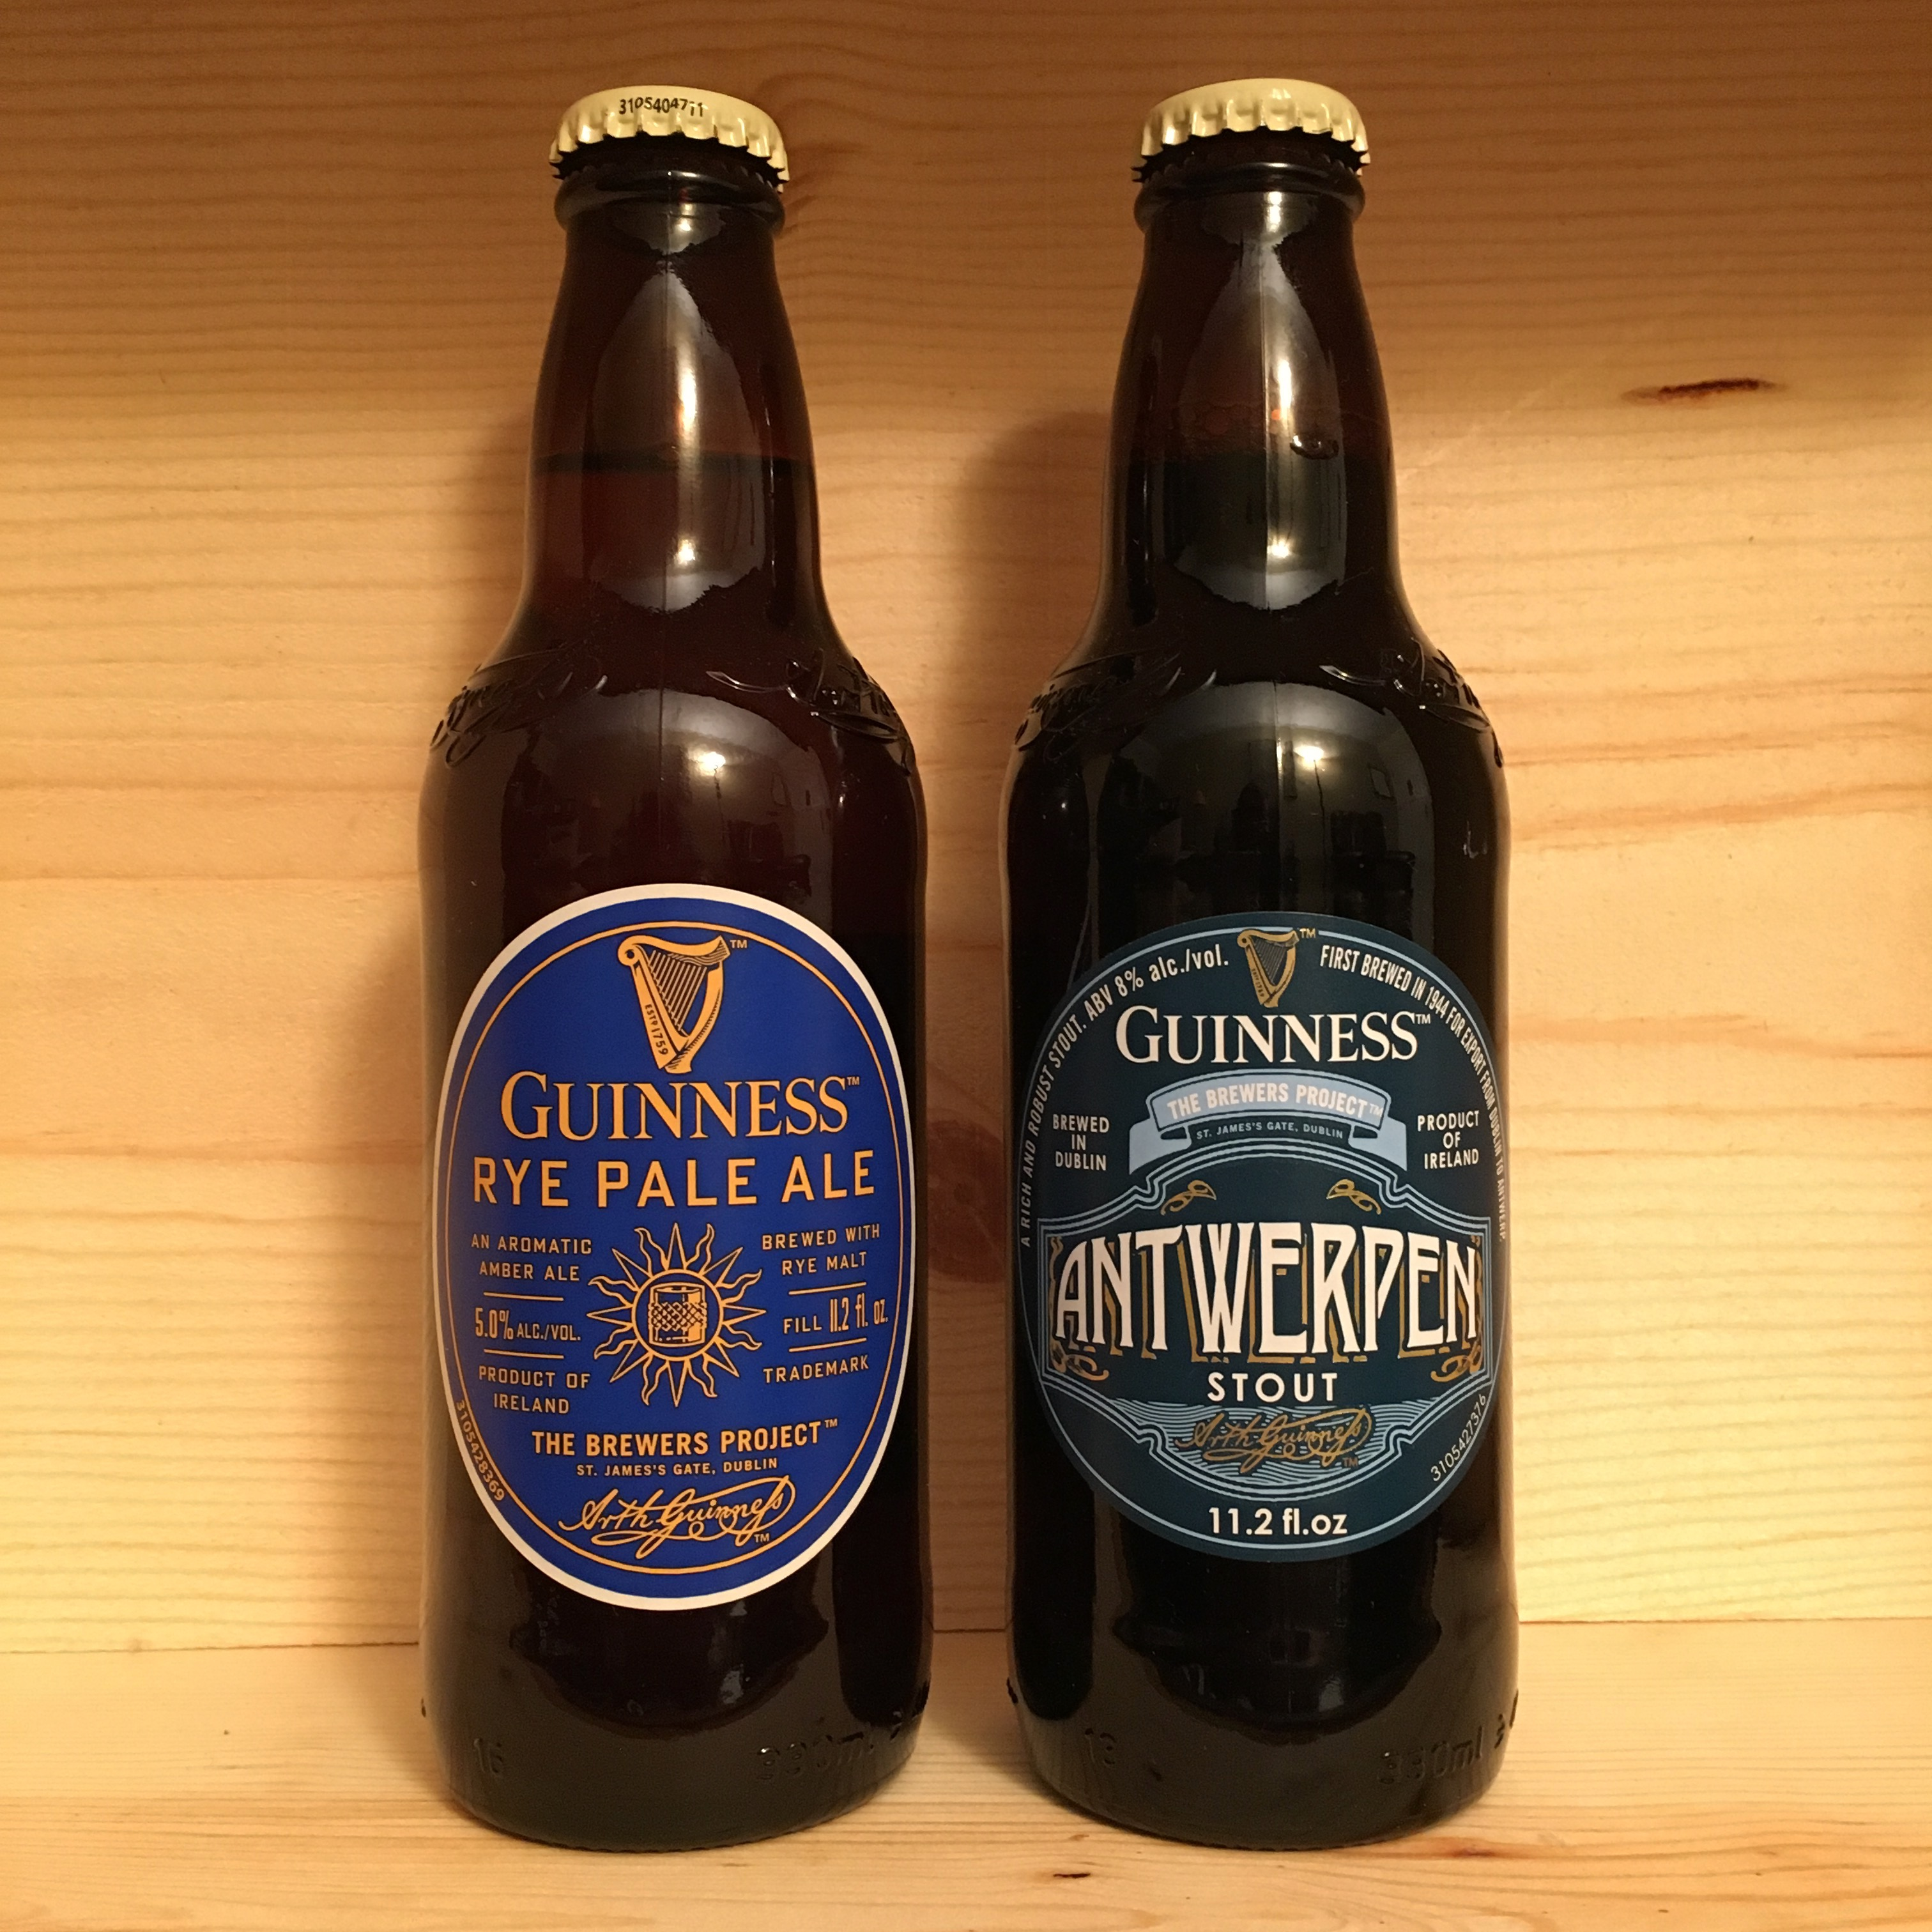 Guinness debuts guinness rye pale ale and guinness antwerpen stout - Guinness beer images ...